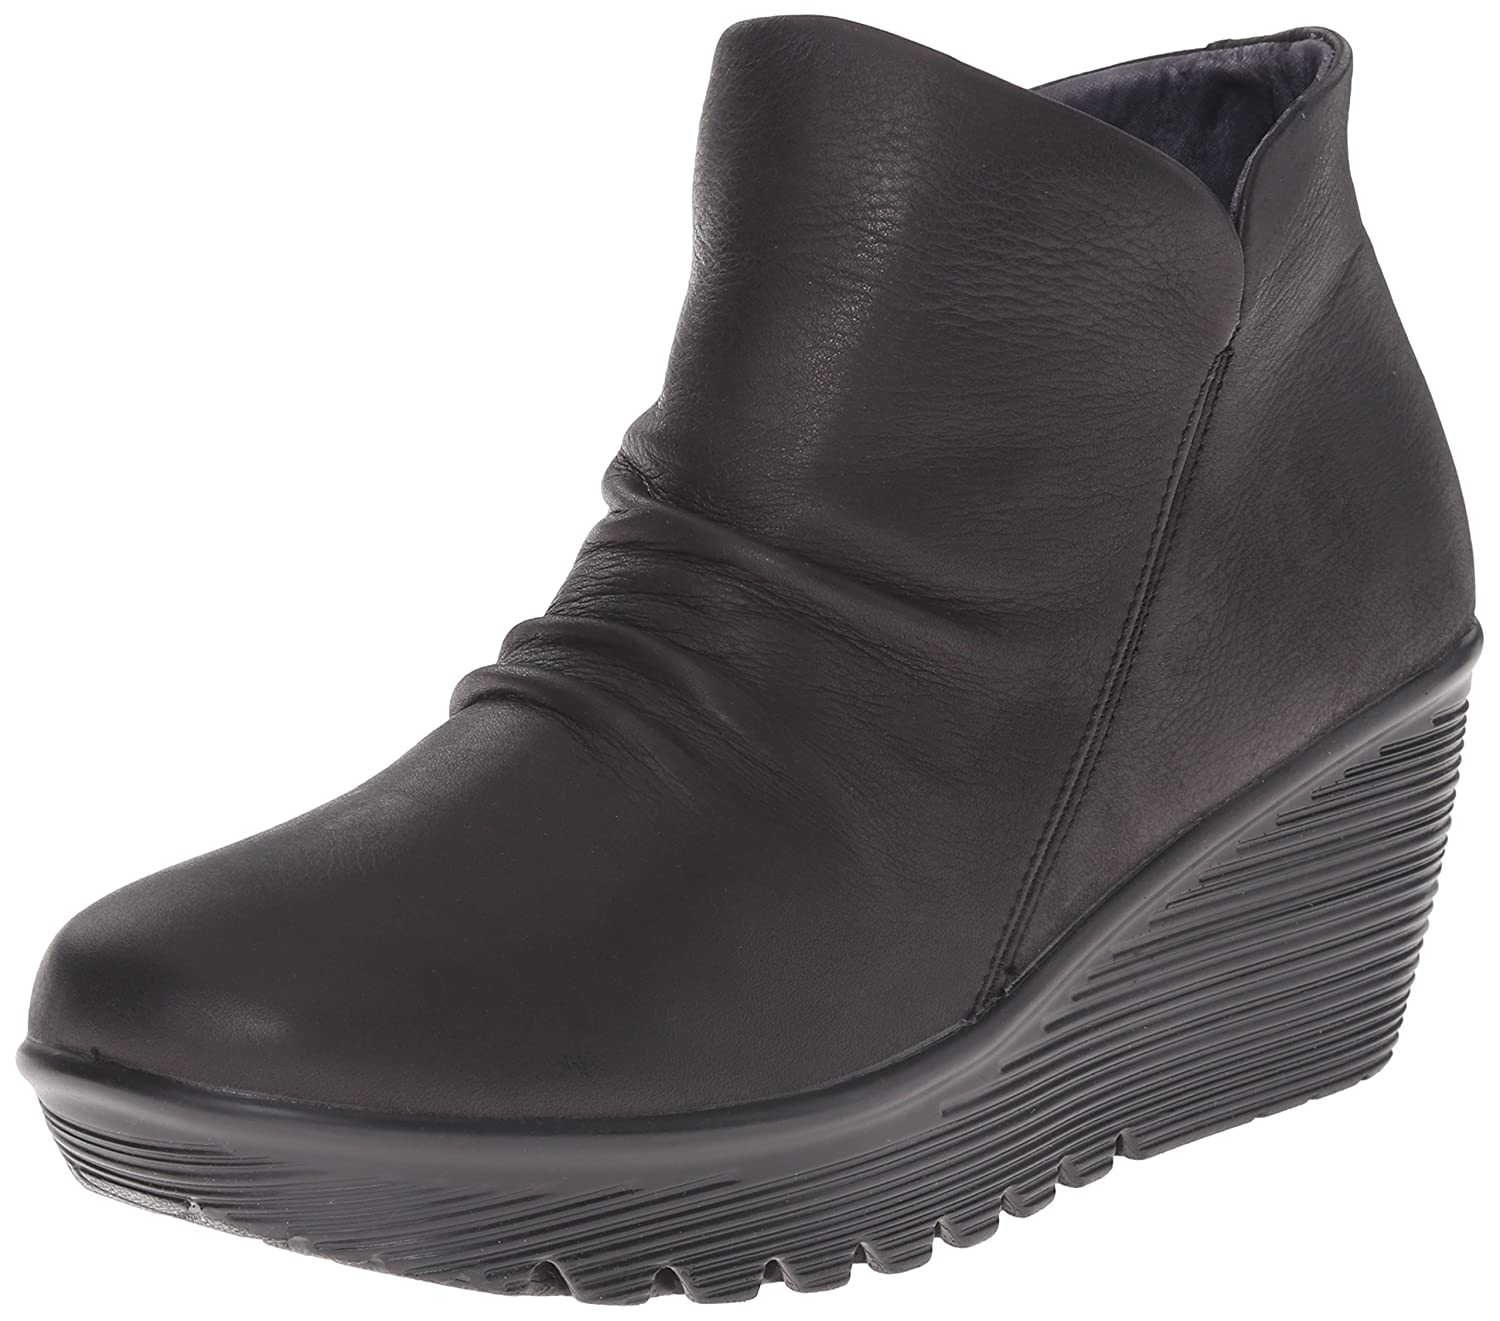 515f2a7d6b1b Skechers Women s Parallel - Triple Threat Ankle Boot  Amazon.ca ...